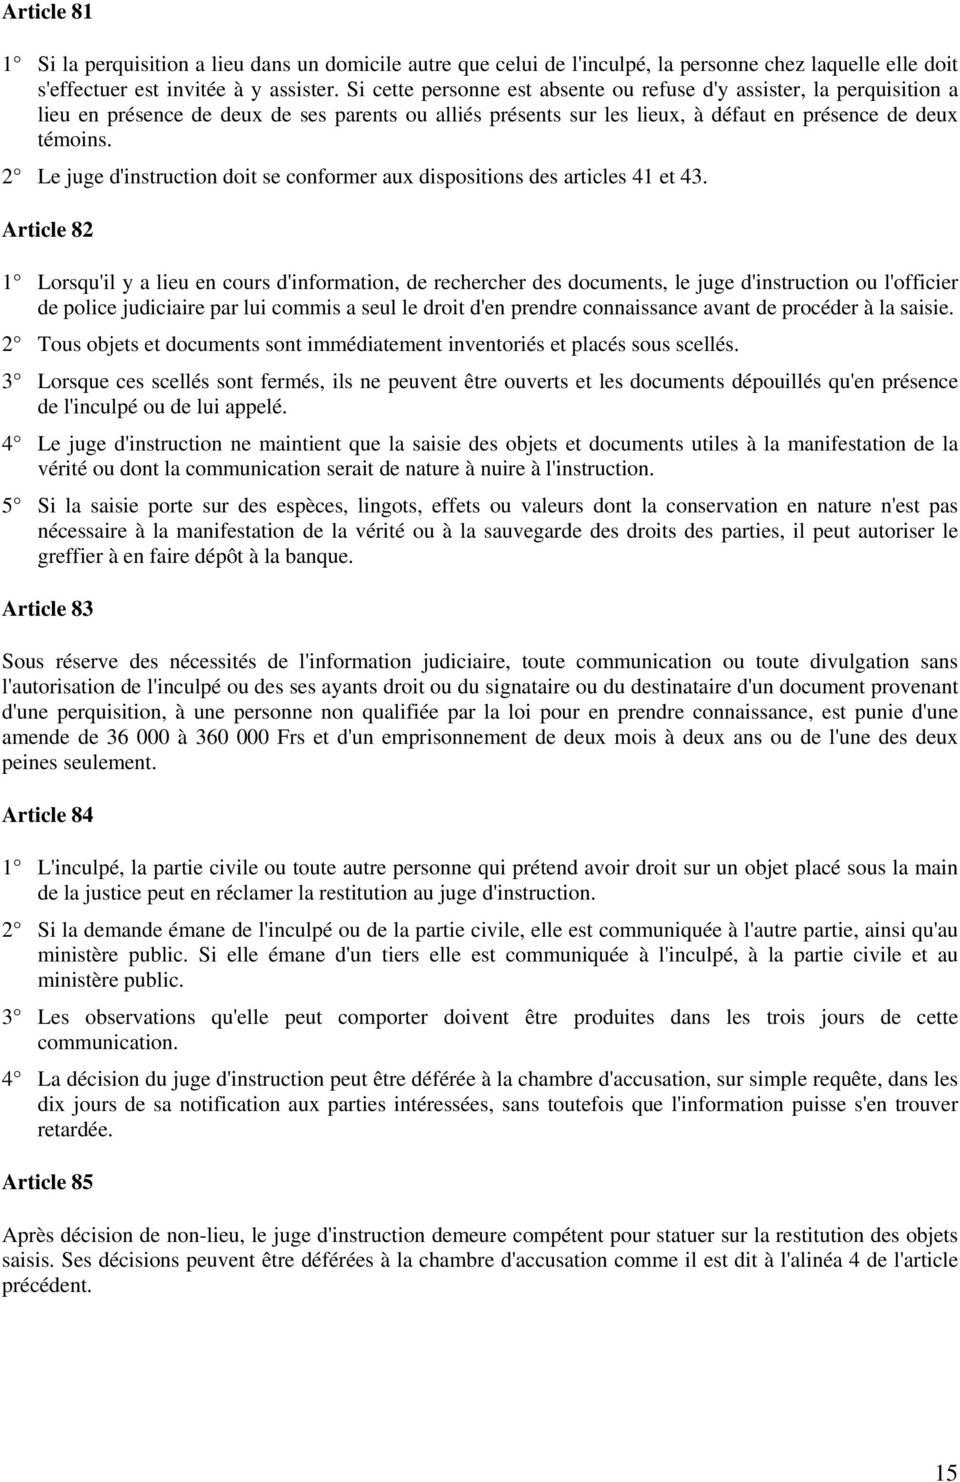 2 Le juge d'instruction doit se conformer aux dispositions des articles 41 et 43.